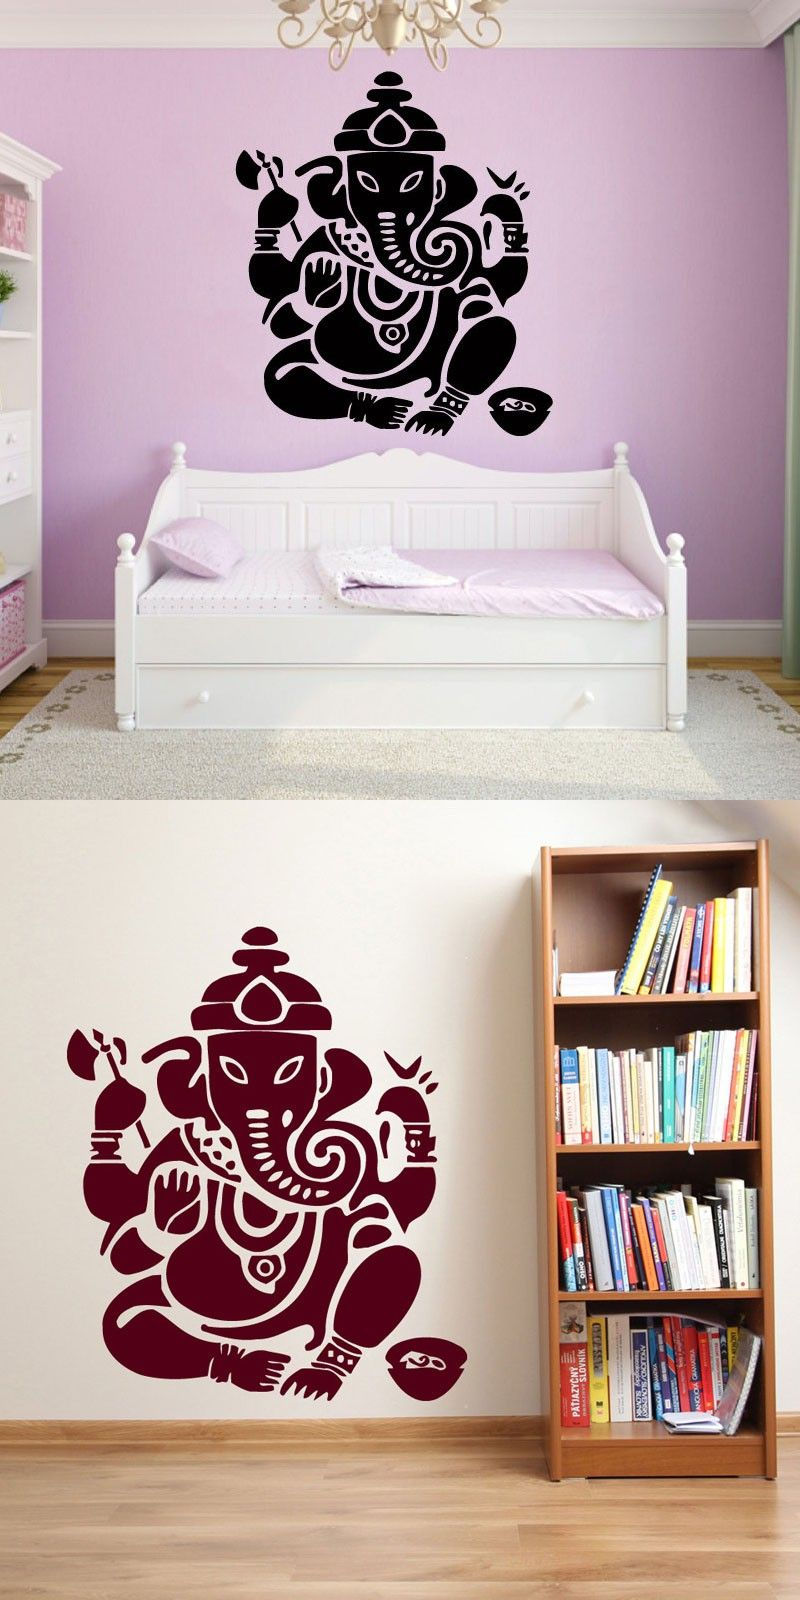 Ganesha lord wall stickers indian elephant modern home decor ganesha lord wall stickers indian elephant modern home decor removable vinyl wall murals for living room amipublicfo Gallery